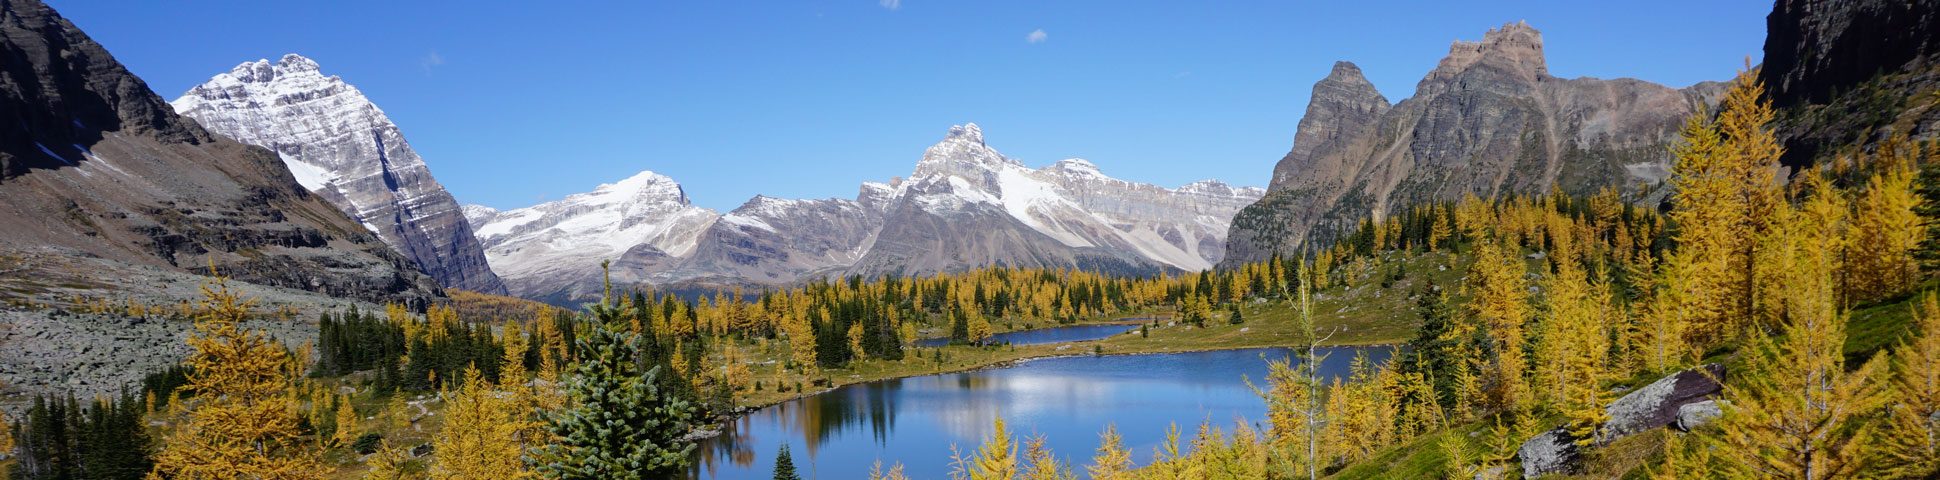 Panoramic view from All Souls Route in Yoho National Park